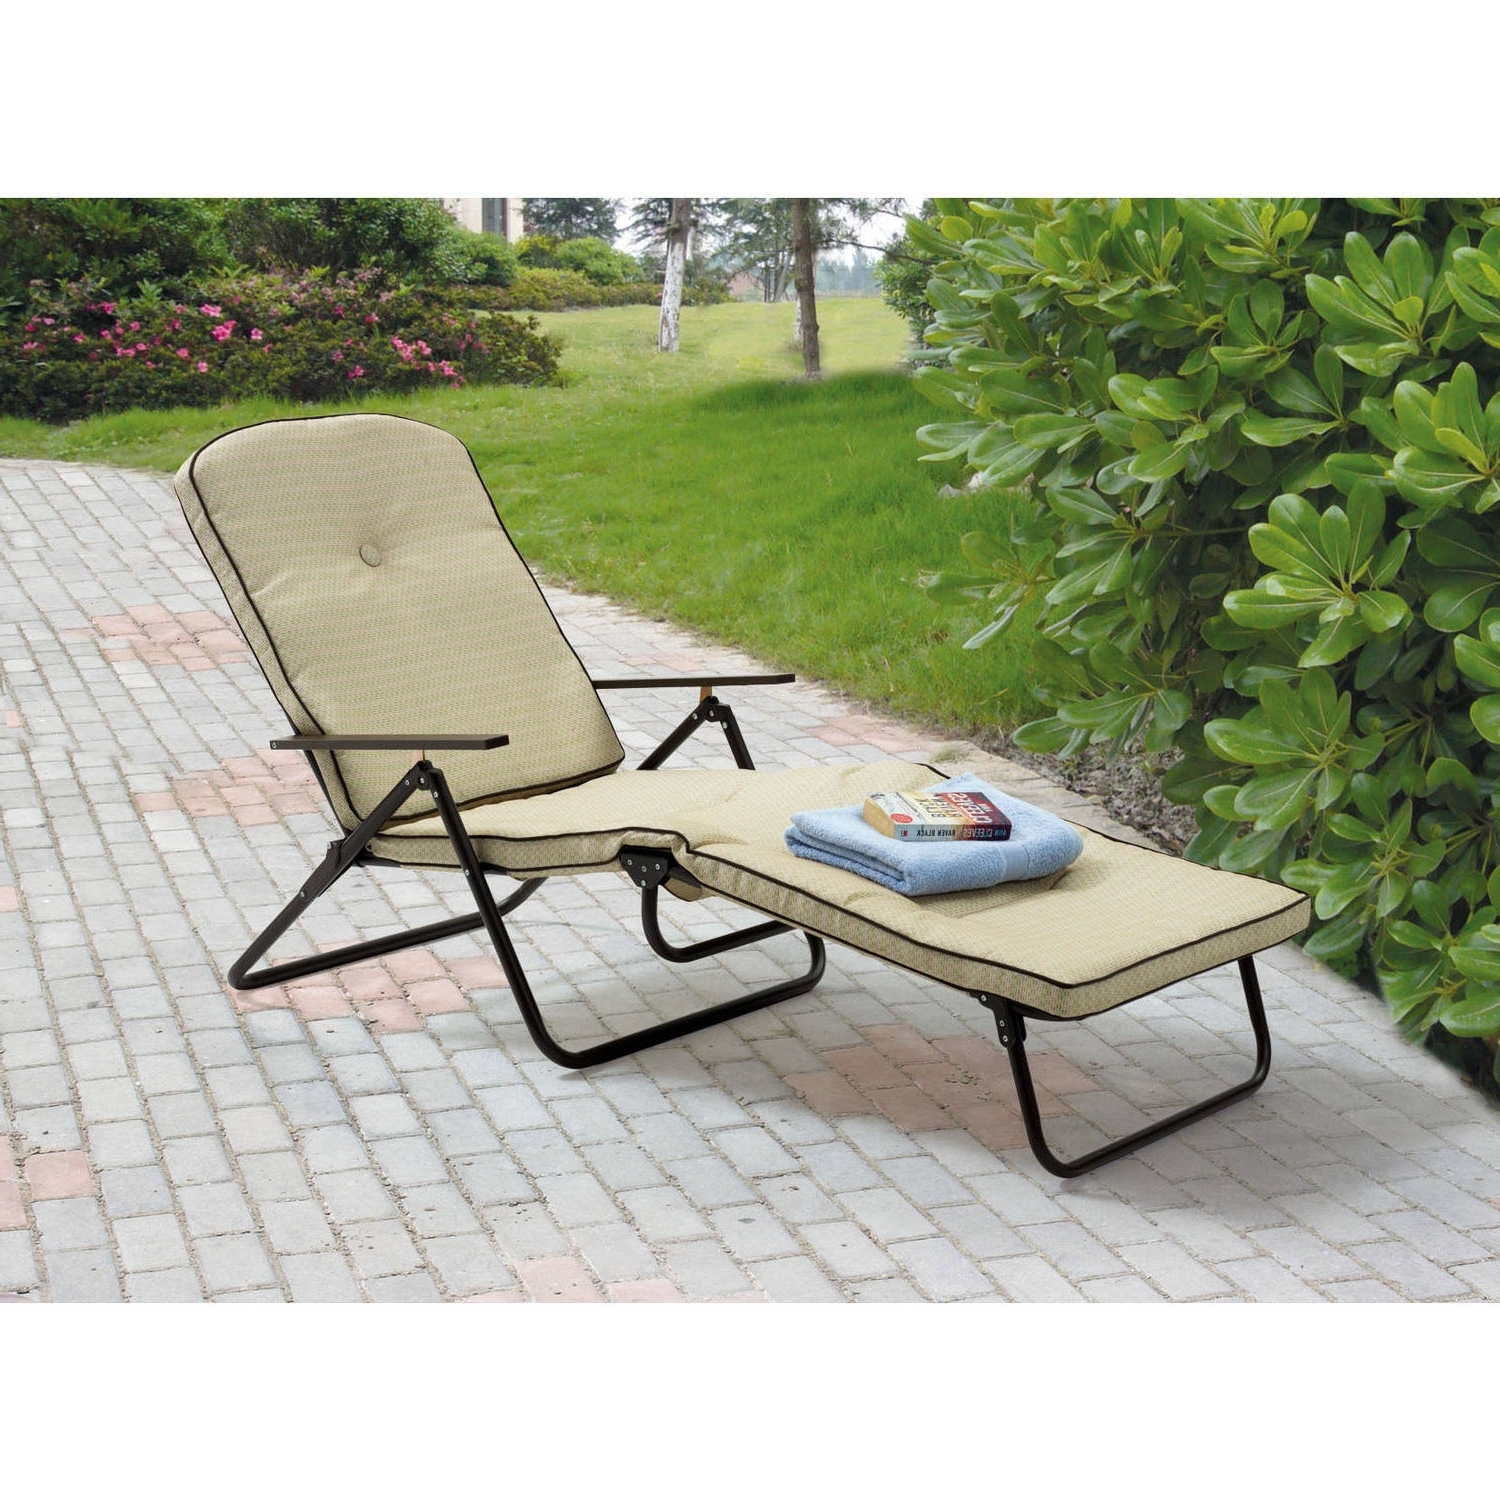 Outdoor Folding Chaise Lounges Within Trendy Mainstays Sand Dune Outdoor Padded Folding Chaise Lounge, Tan (View 8 of 15)